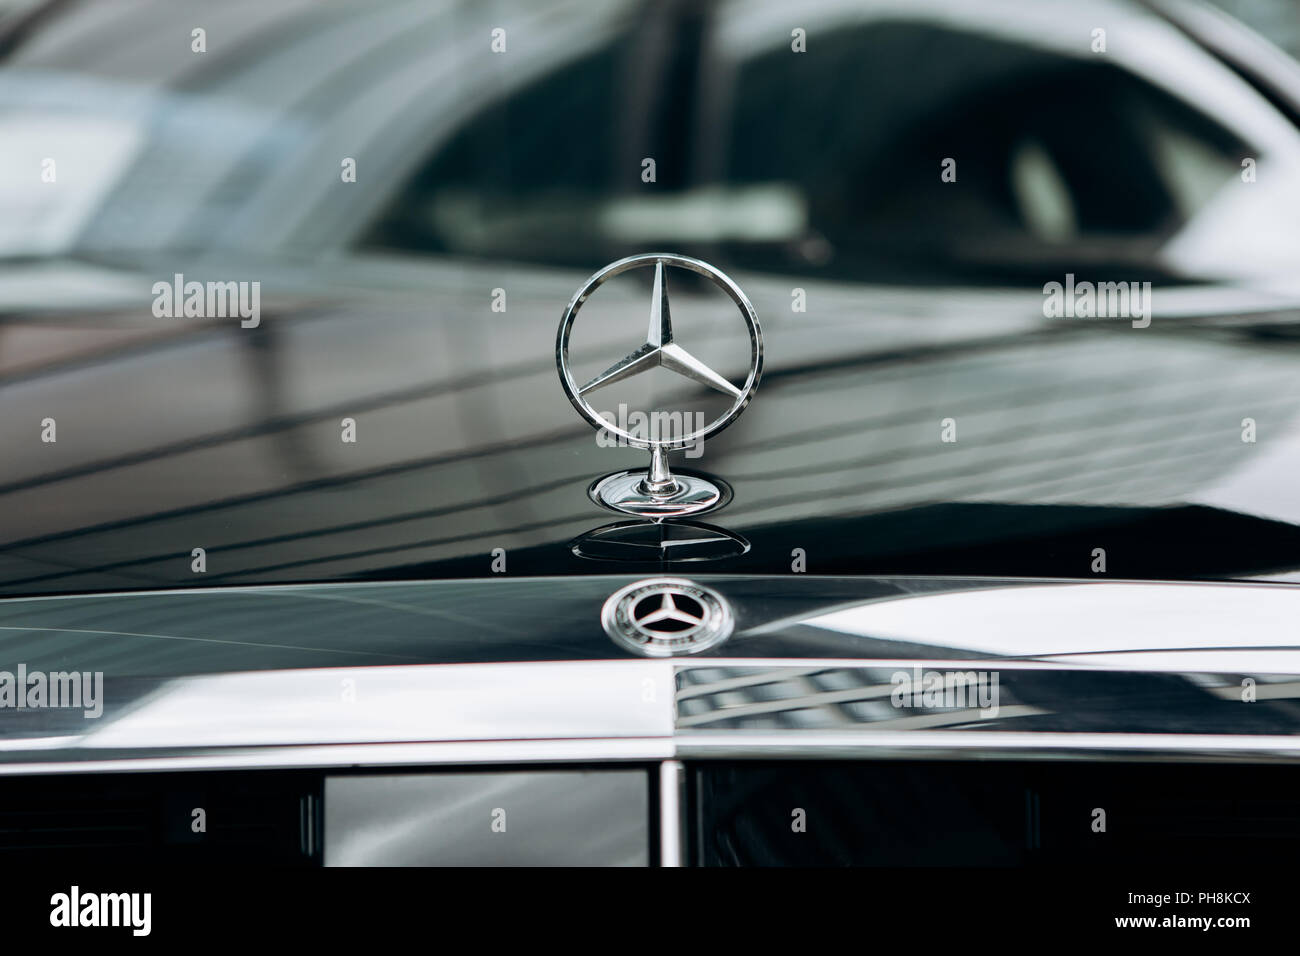 Berlin August 29 2018 A Close Up Of The Mercedes Sign And The